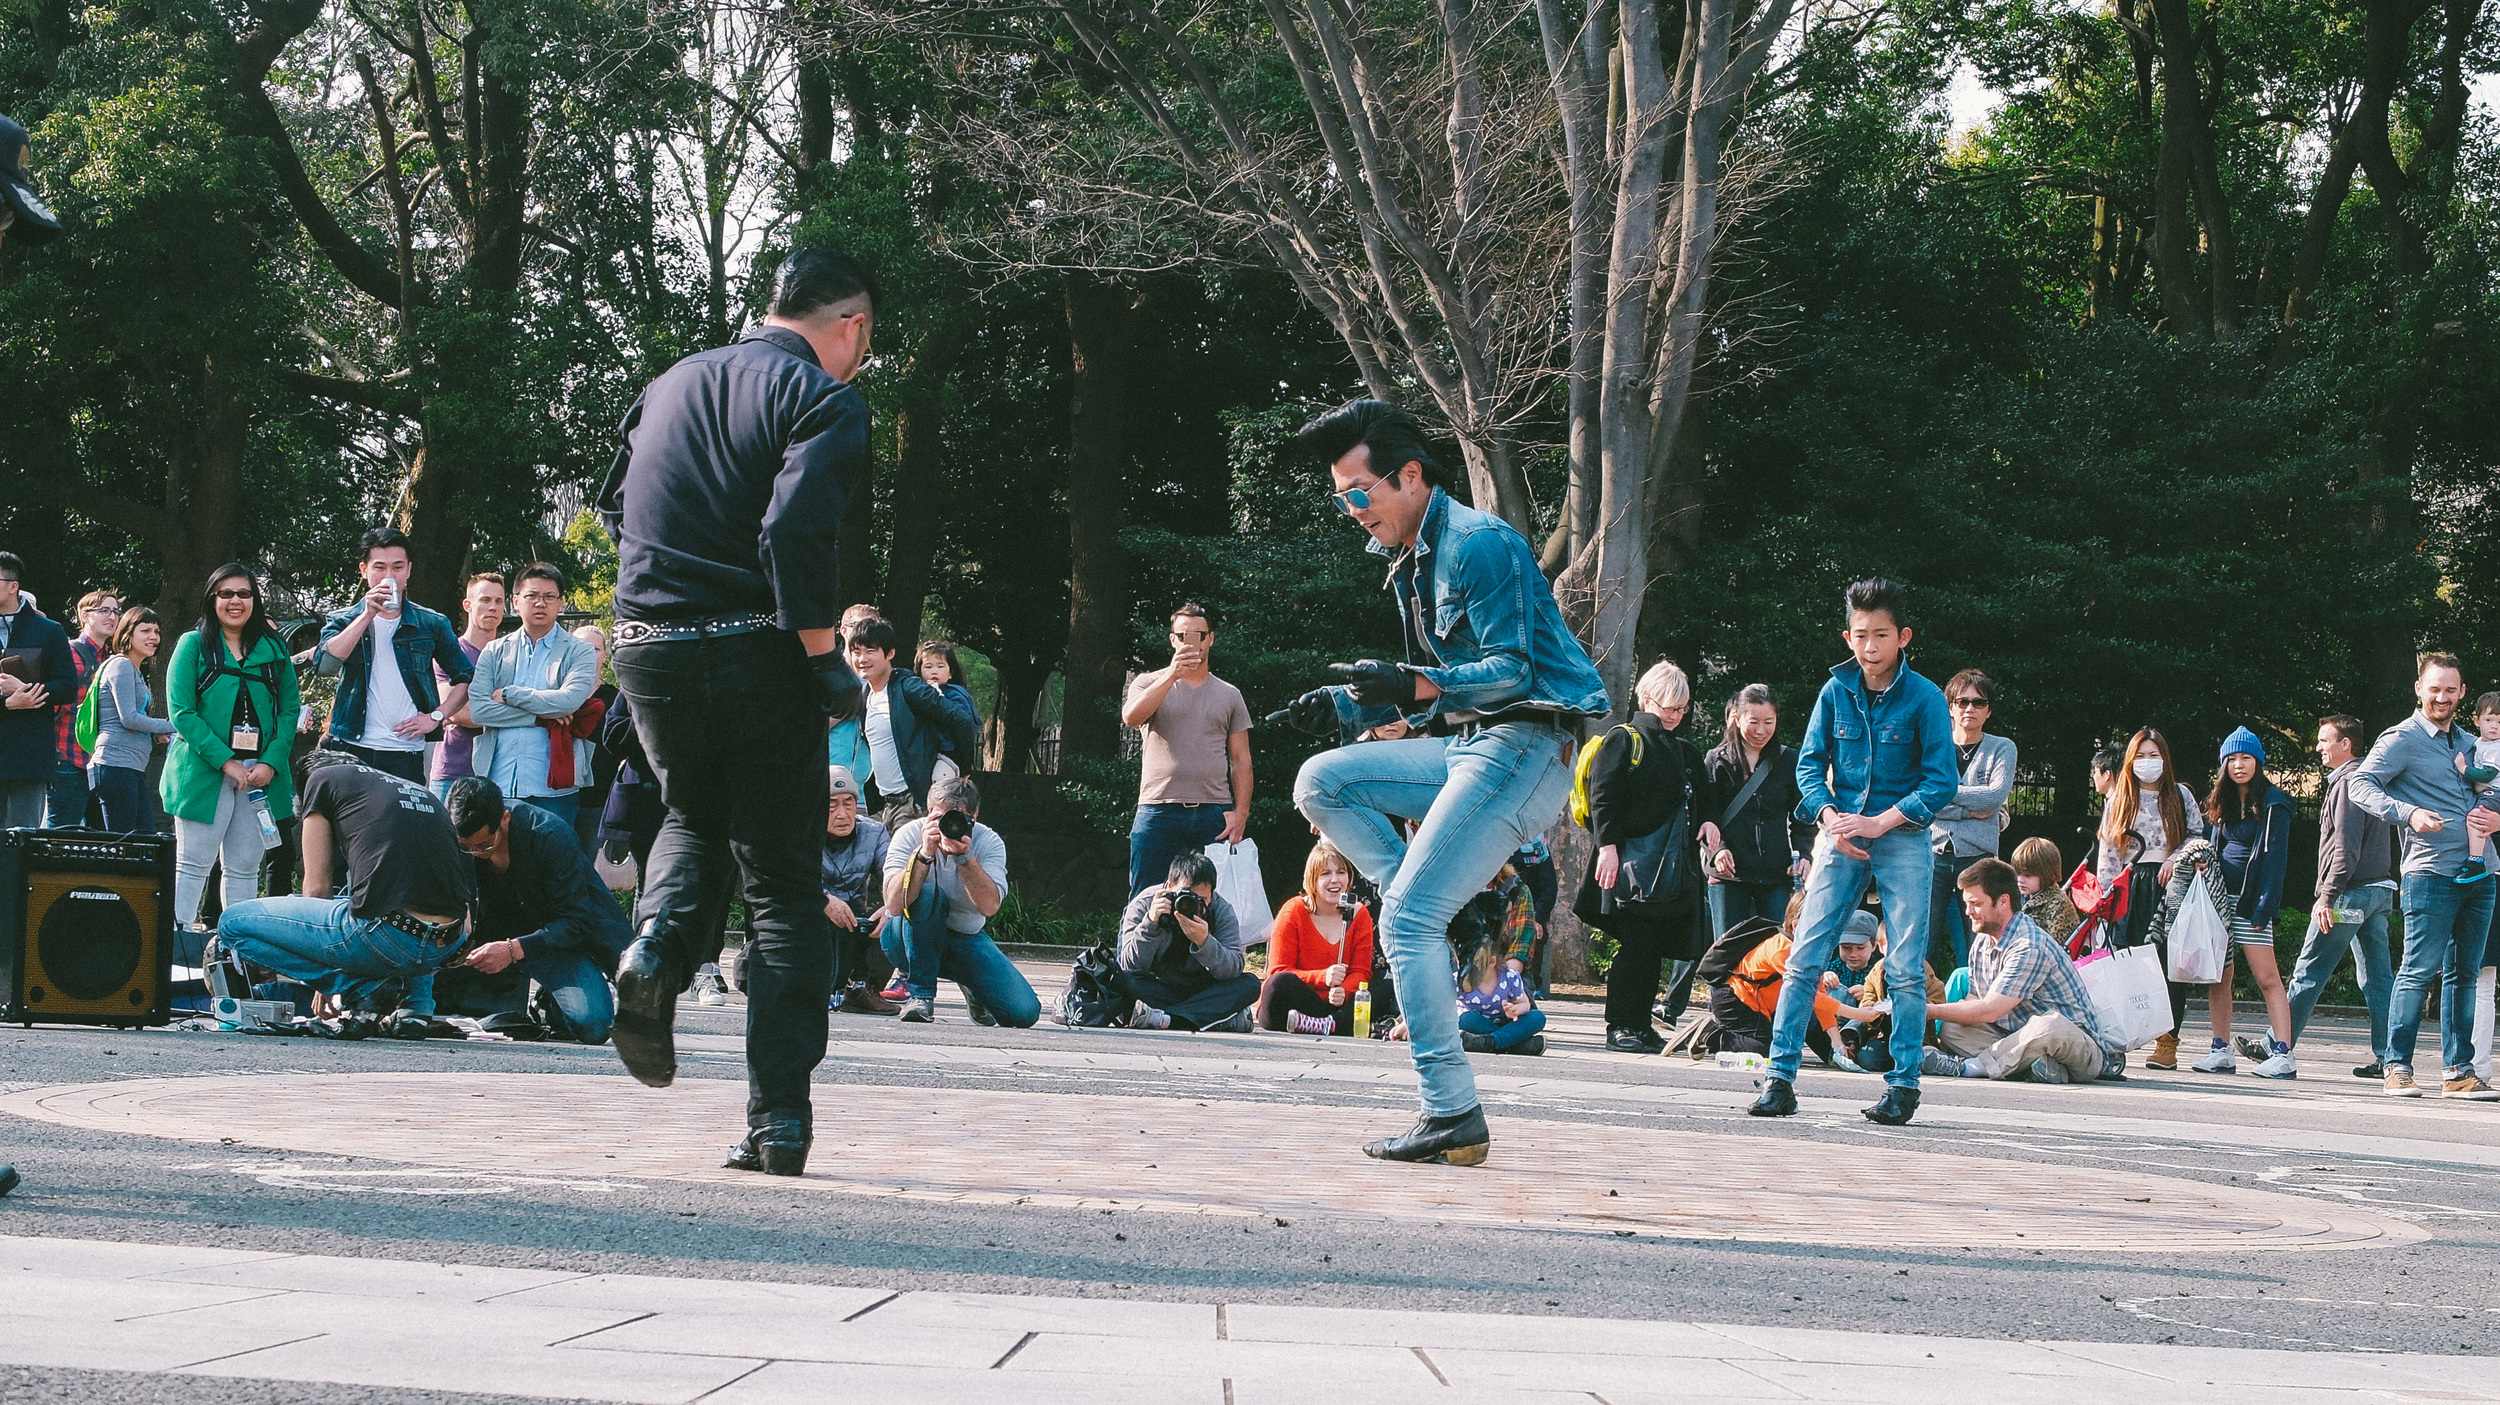 Got down with the Dancing Elvis' of Yoyogi Park on a Sunday afternoon  Cost: Free